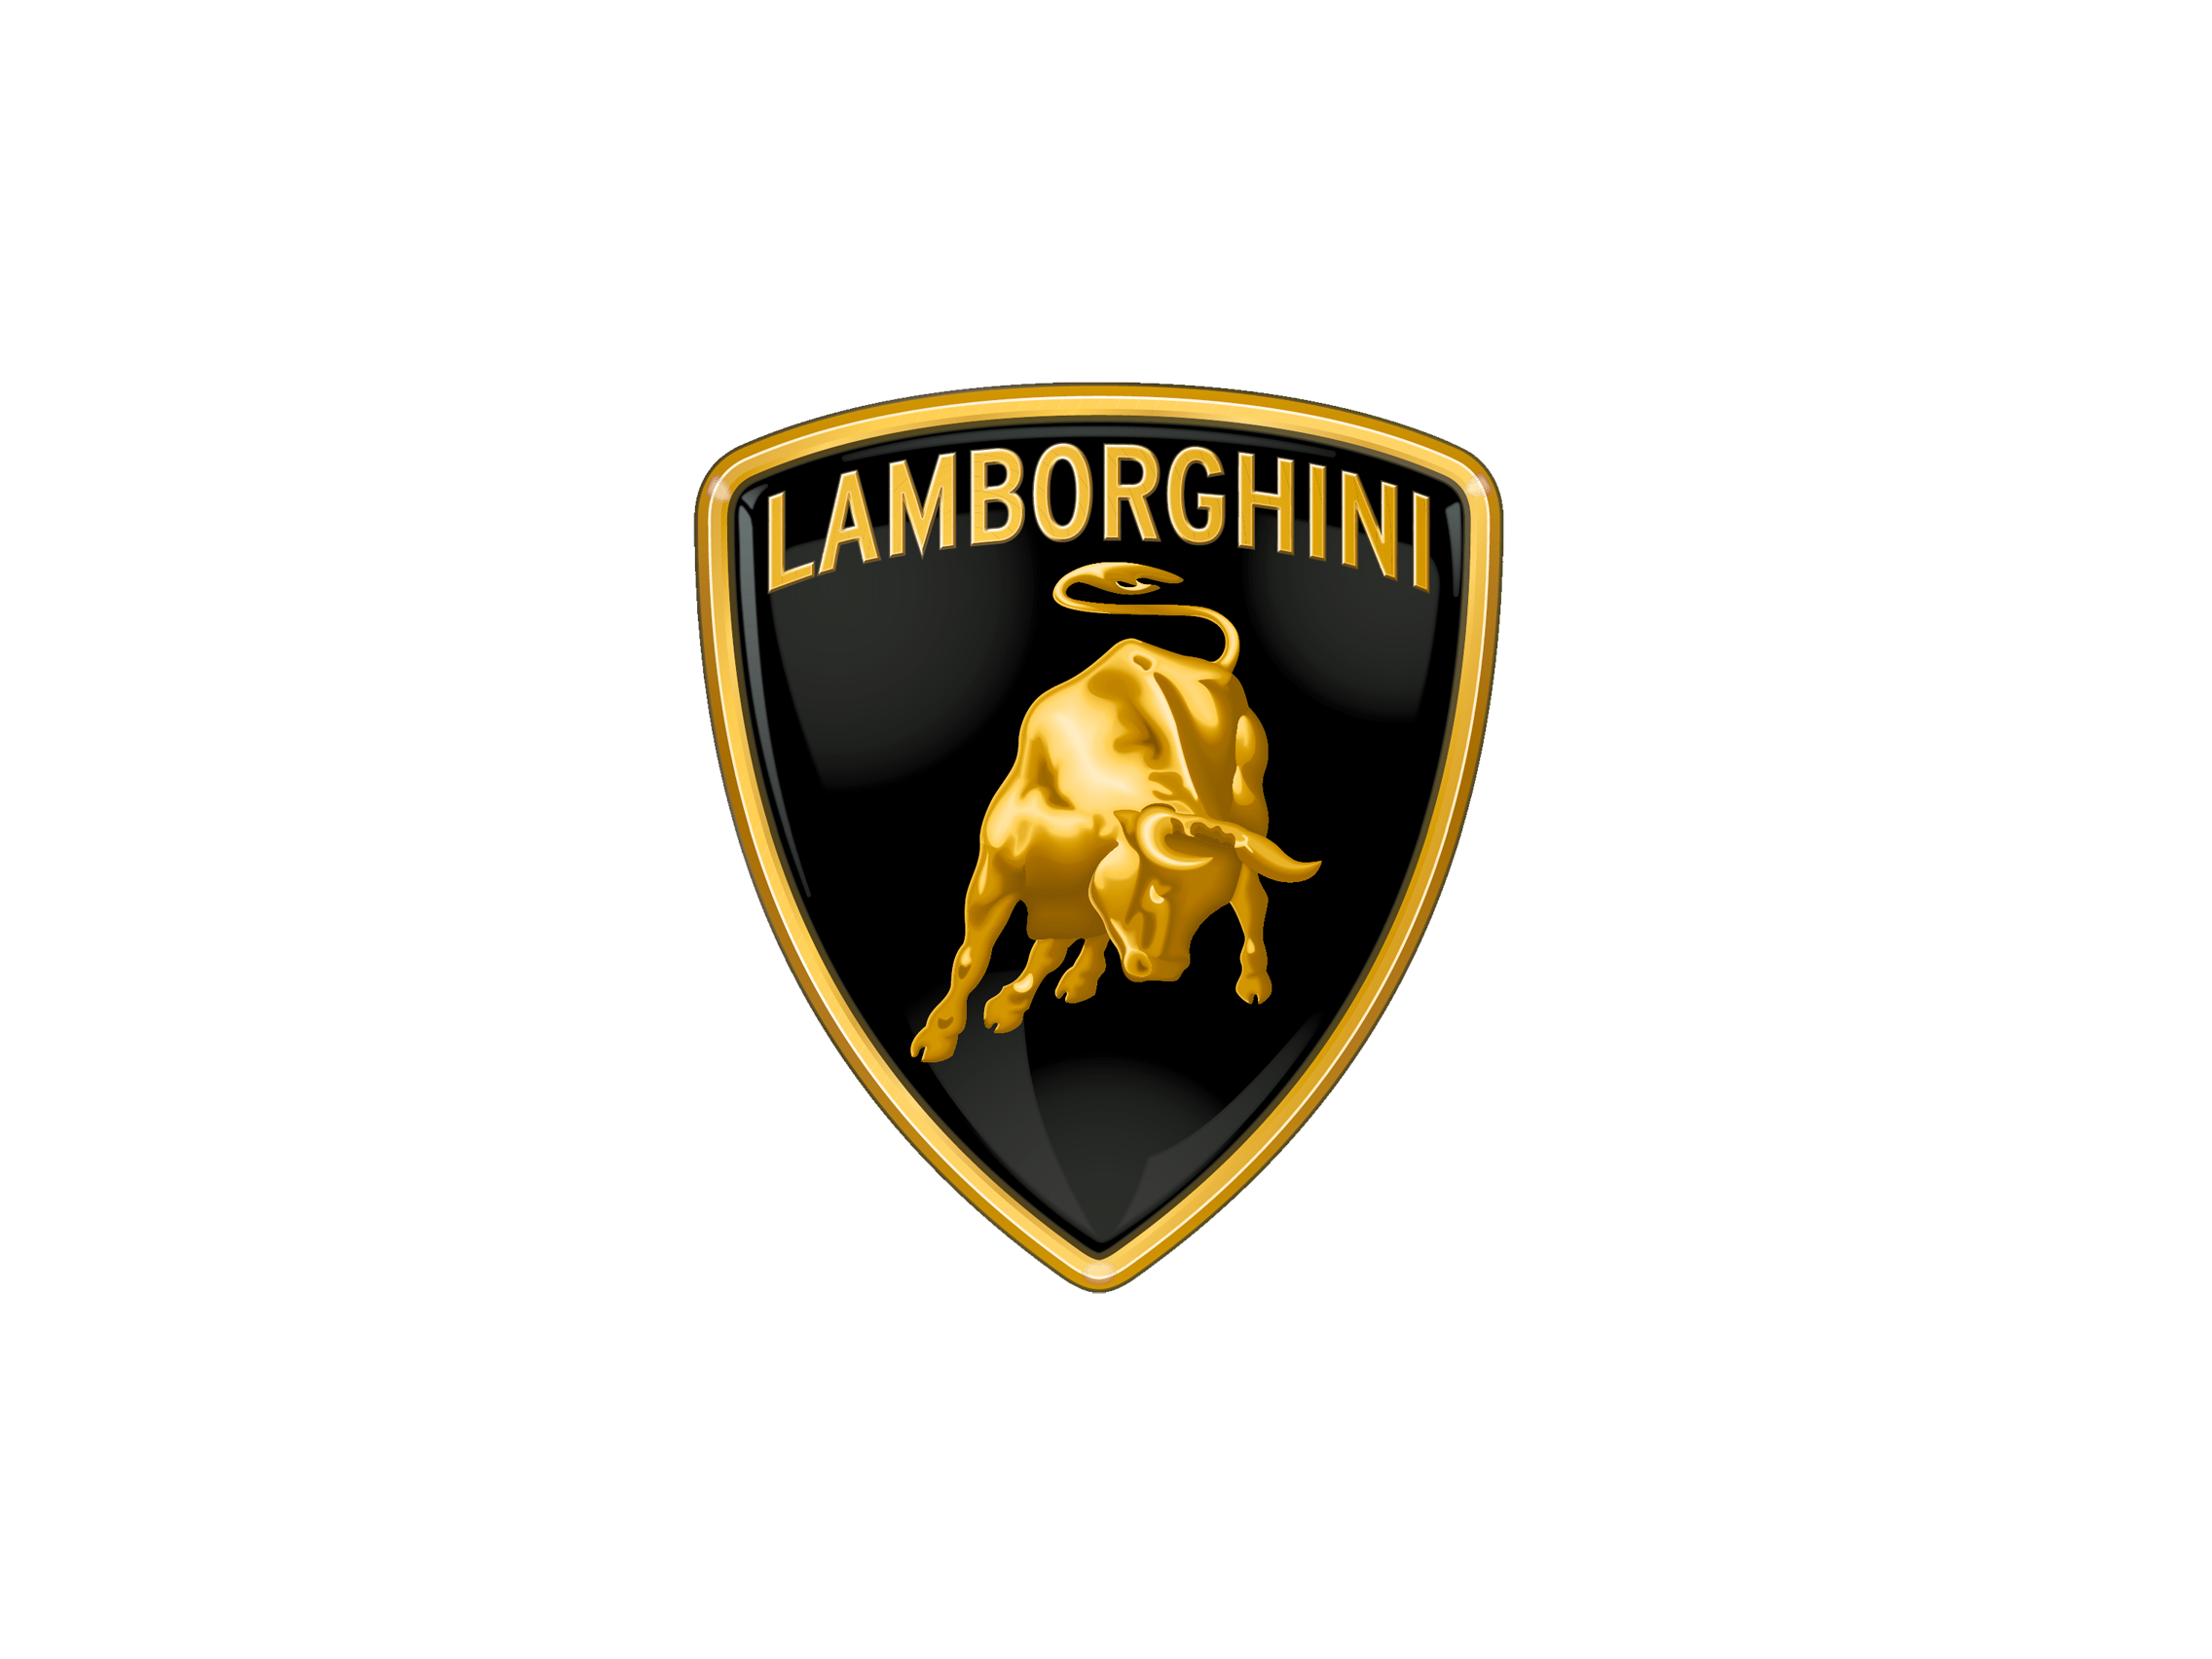 lamborghini logo wallpapers pictures images #27197